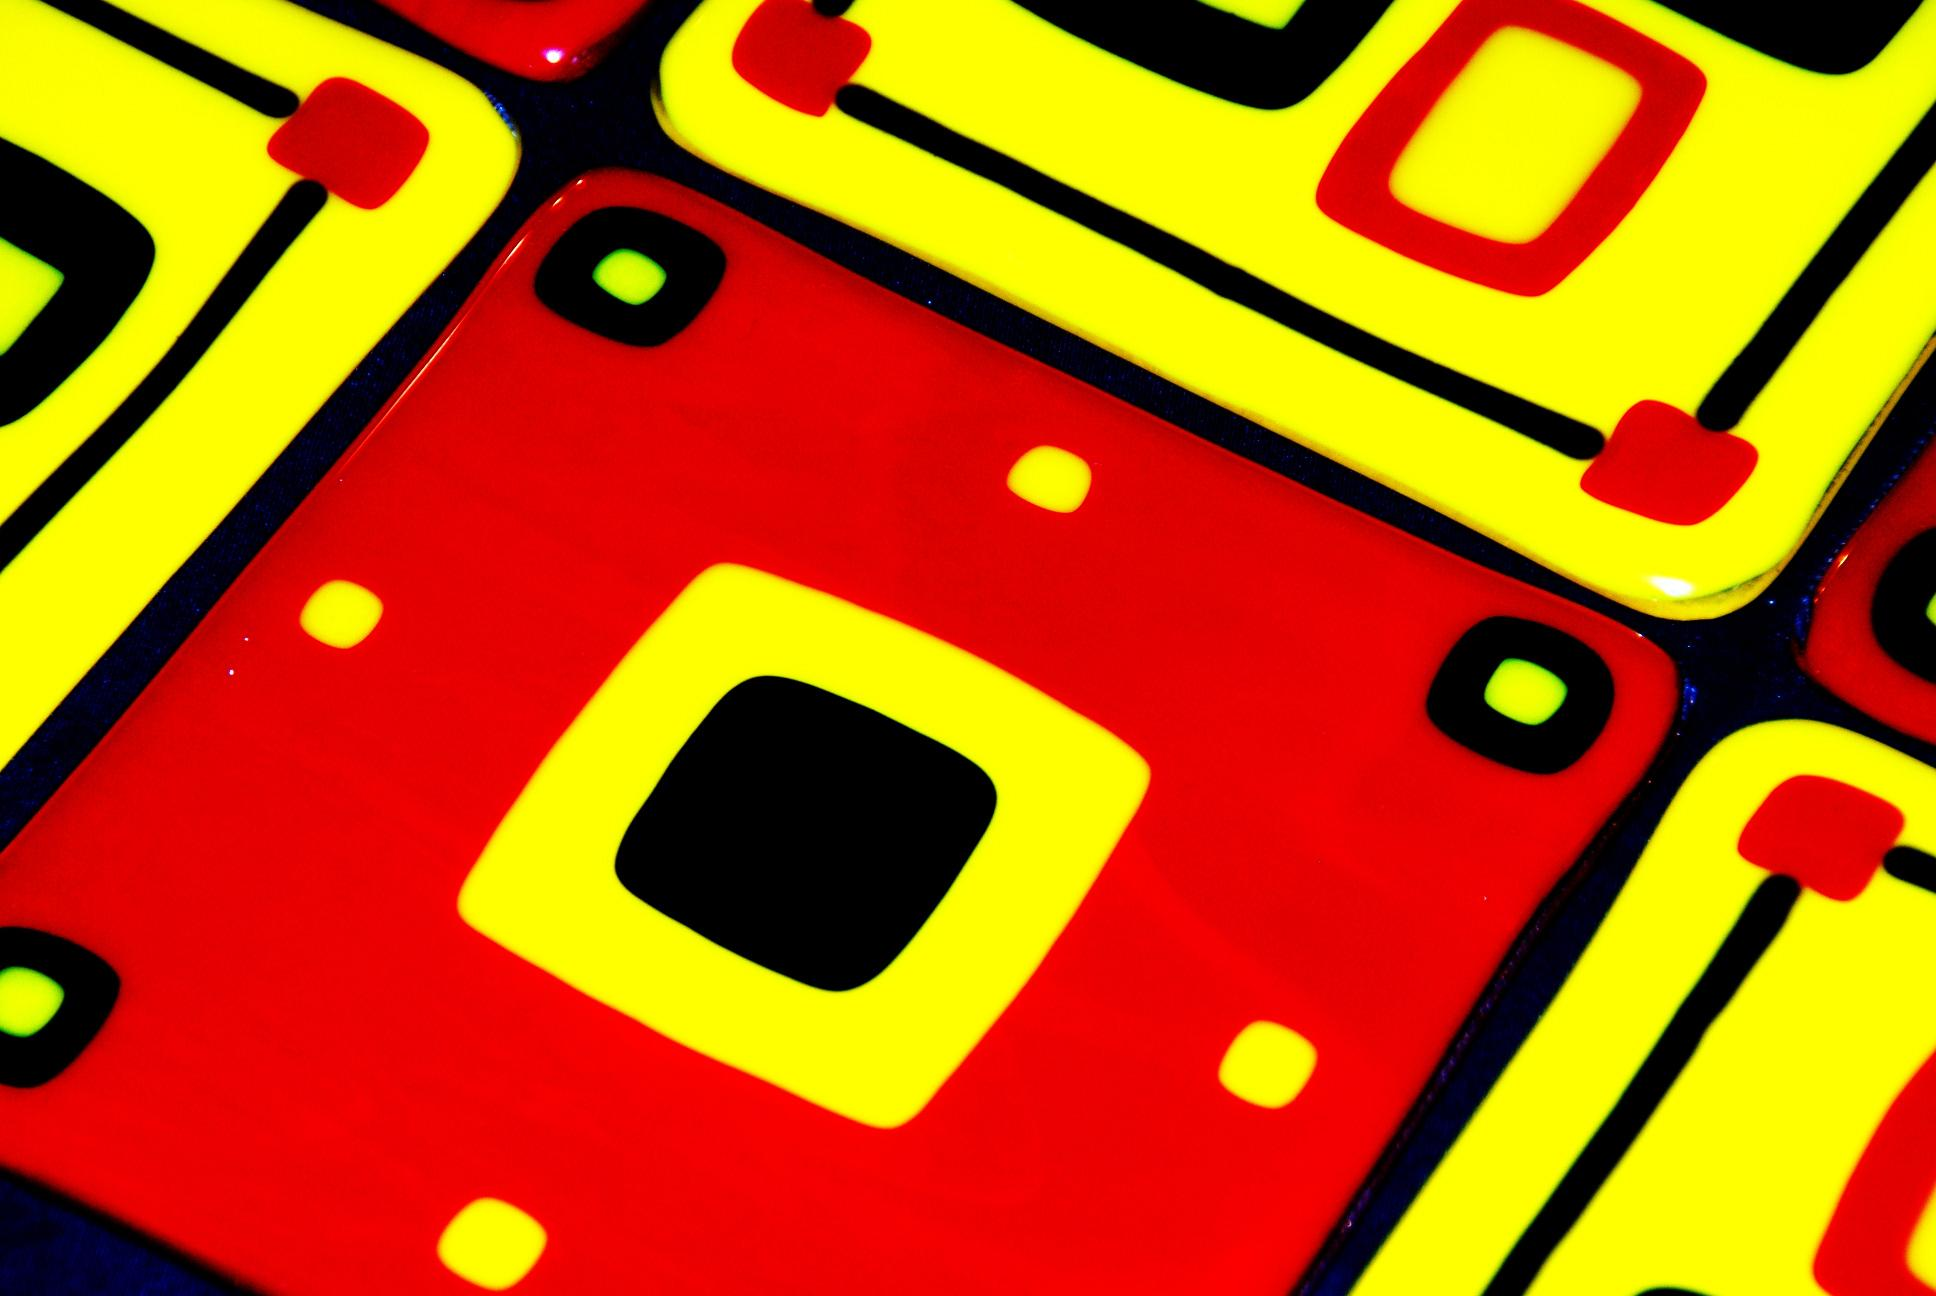 red and gold fused glass tiles amish style.JPG